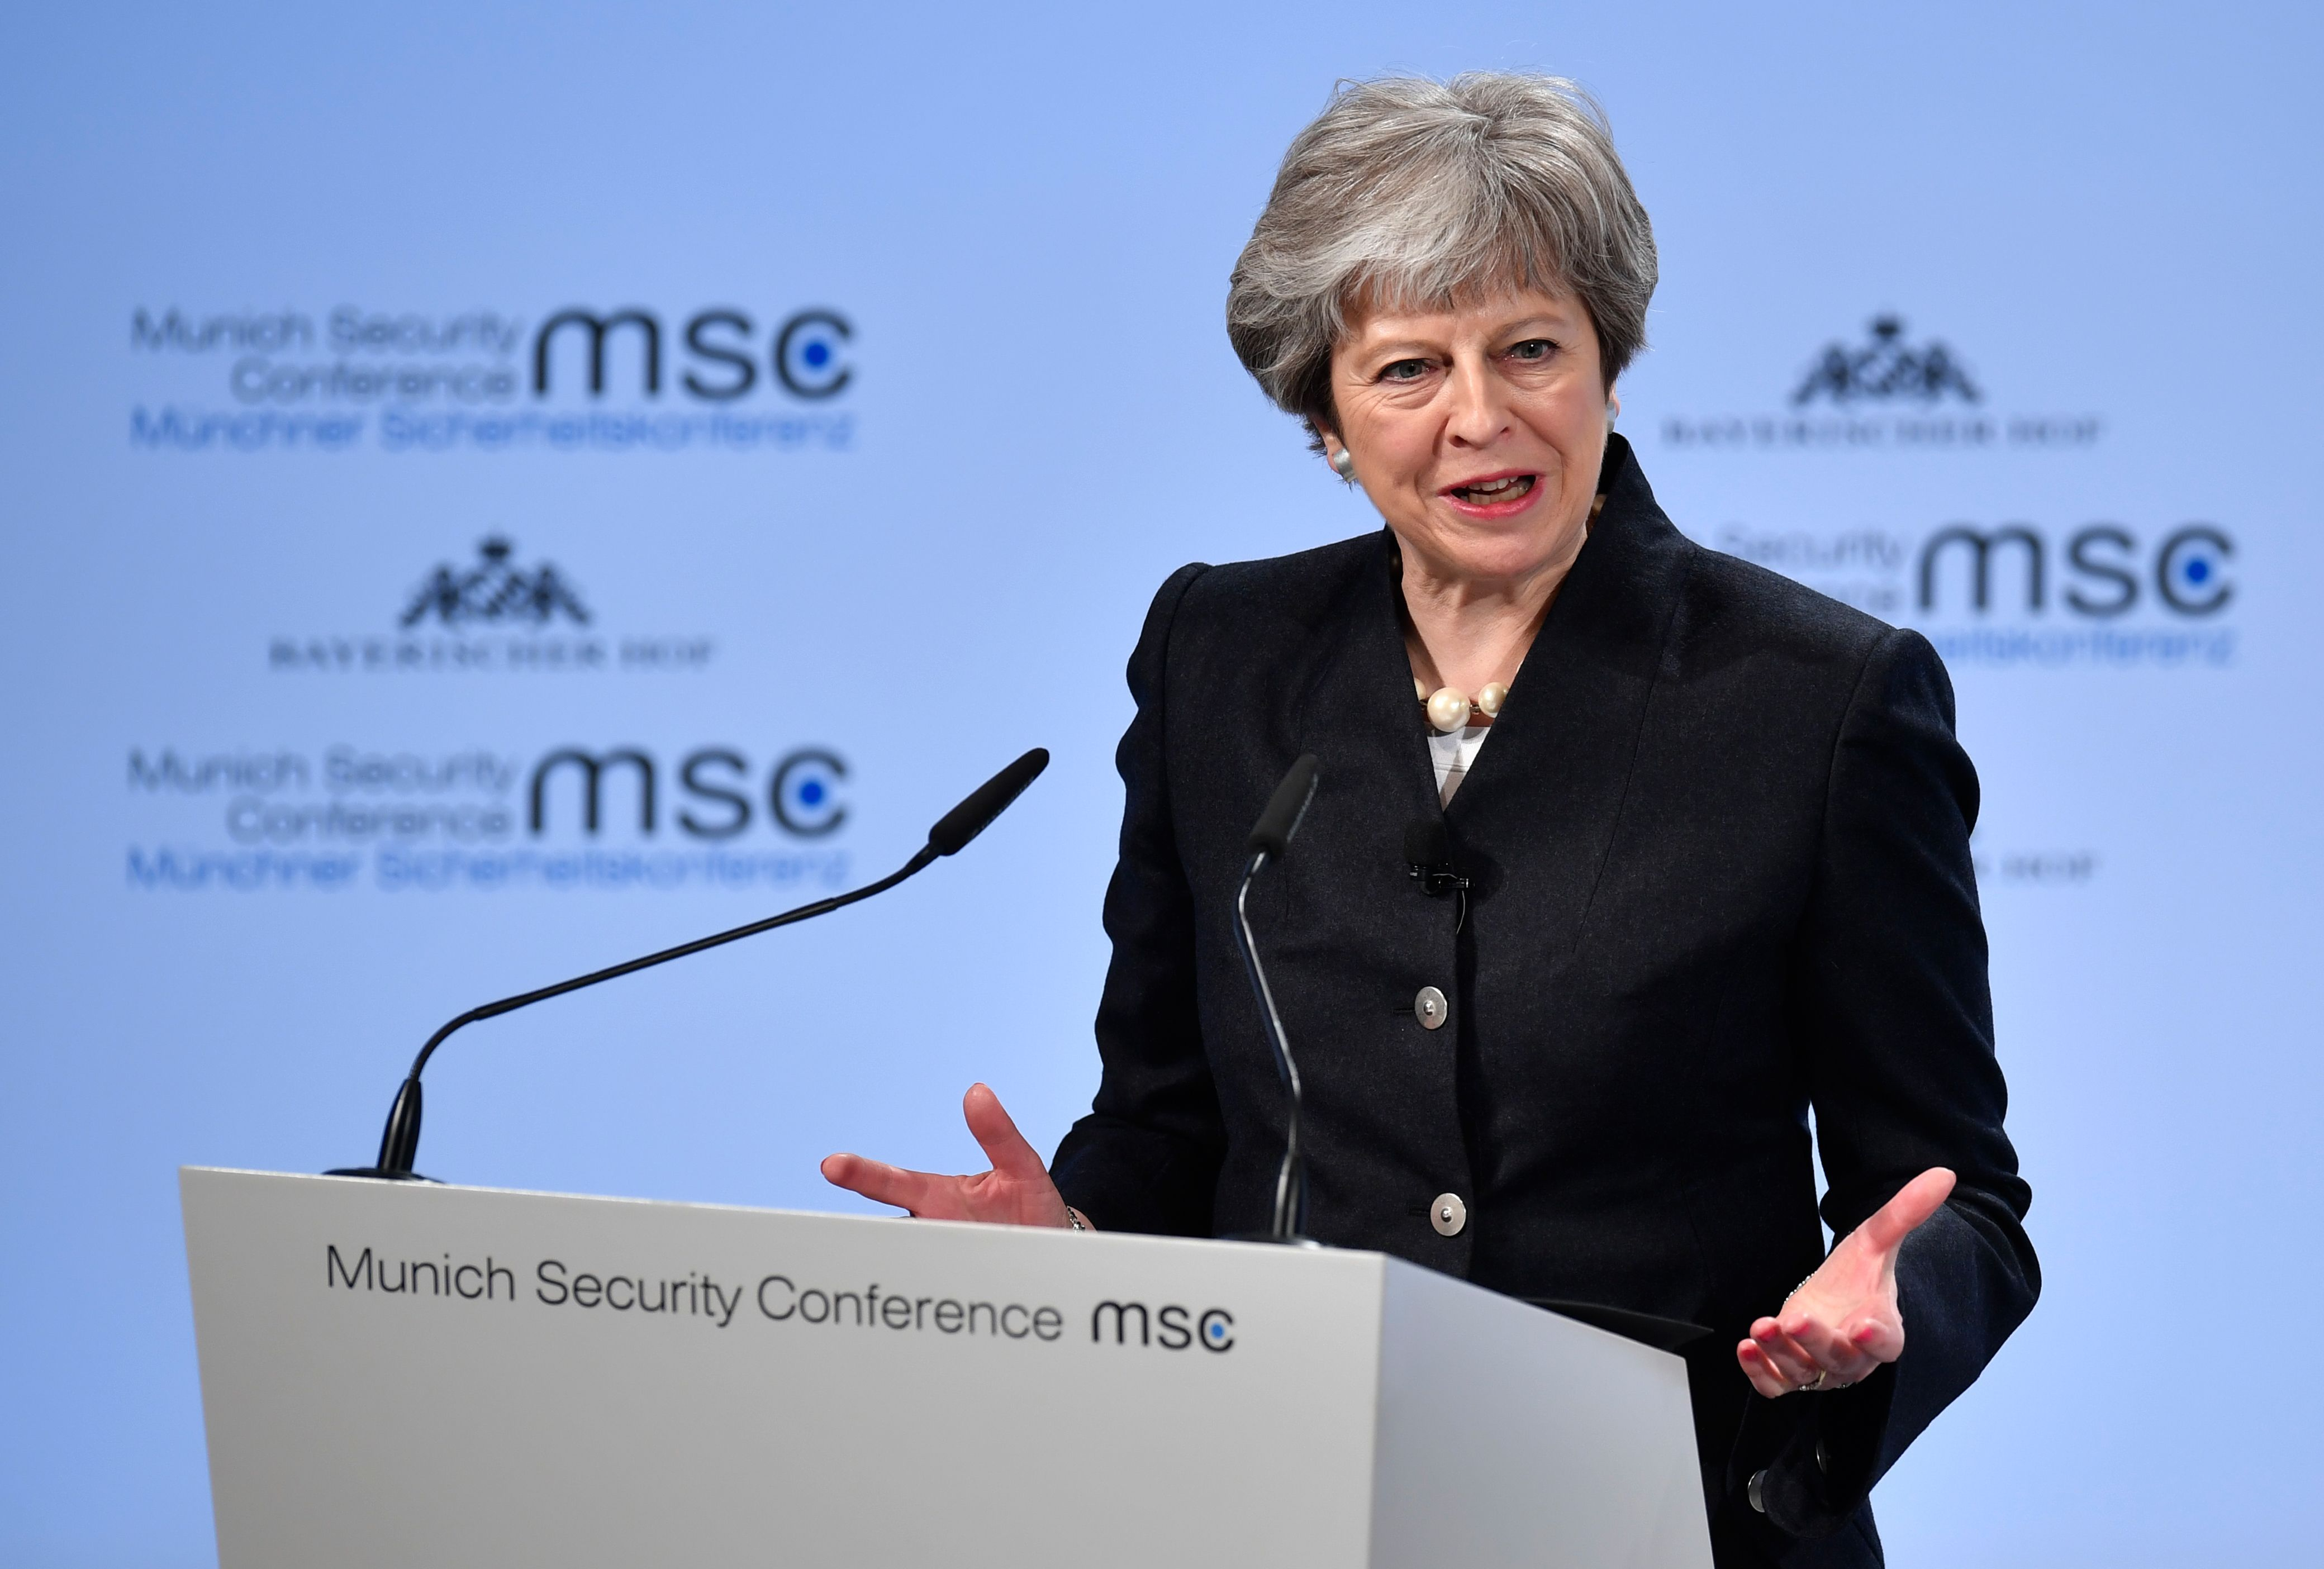 British Prime Minister Theresa May gives a speech during the Munich Security Conference on February 17, 2018 in Munich, southern Germany. Global security chiefs and top diplomats attend the annual Munich Security Conference running until February 18, 2018 to discuss Syria, Ukraine and other international conflicts and crises.  / AFP PHOTO / Thomas KIENZLE        (Photo credit should read THOMAS KIENZLE/AFP/Getty Images)